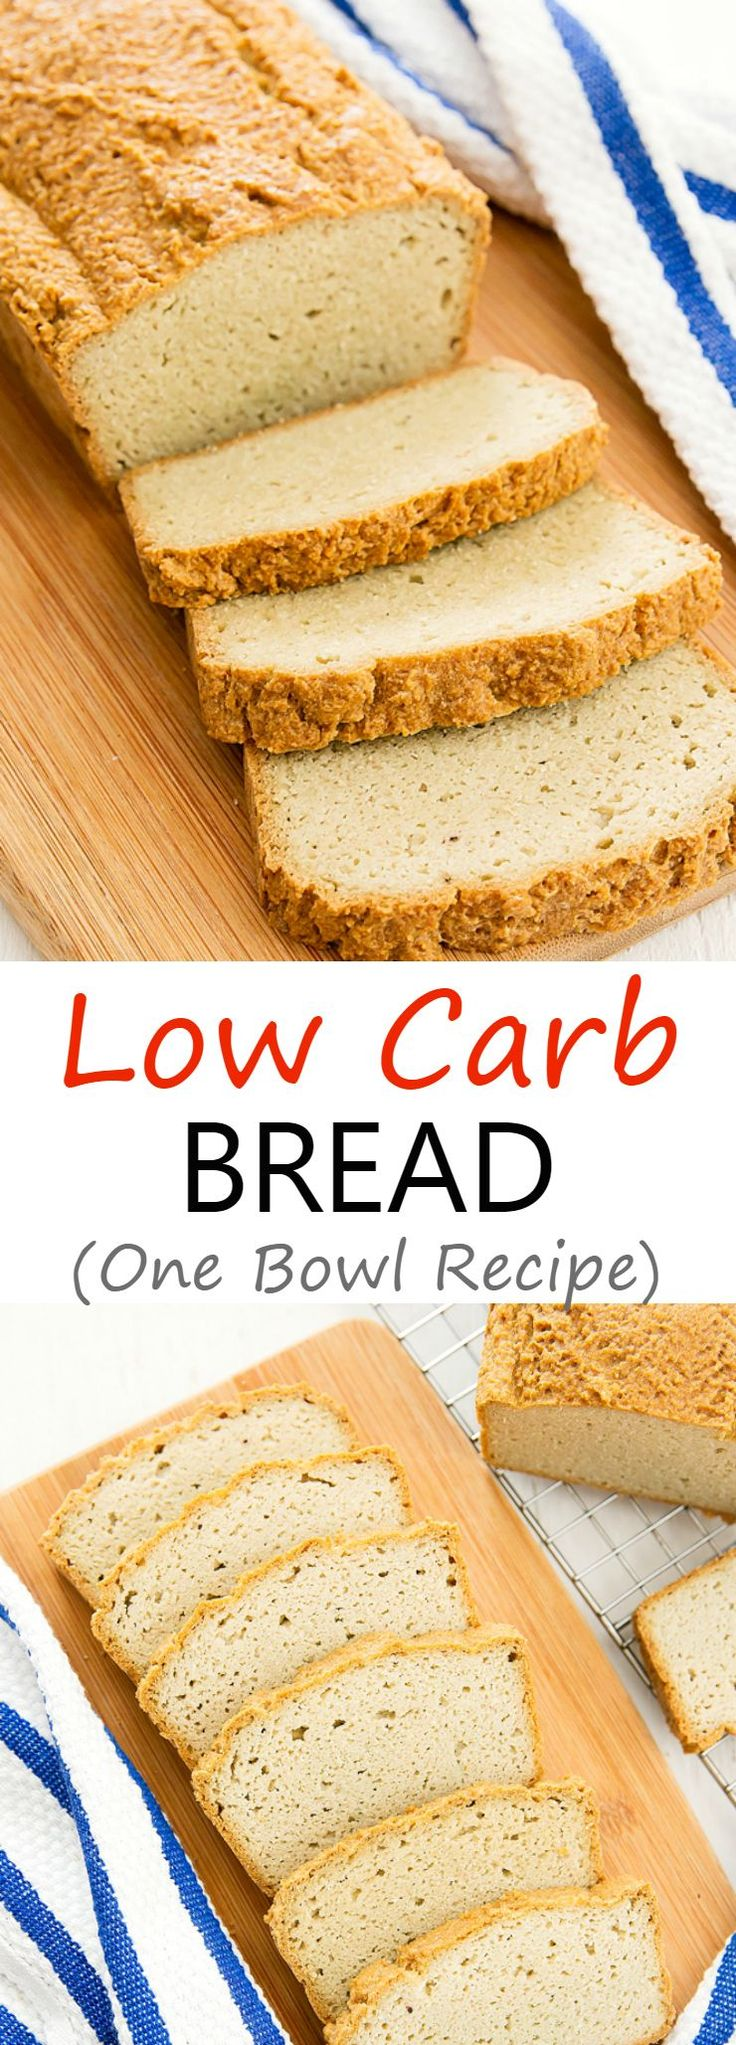 Low Carb Bread. This is an easy, one bowl recipe. The batter is ready in minutes and the bread is also gluten free! Great for sandwiches and toast.